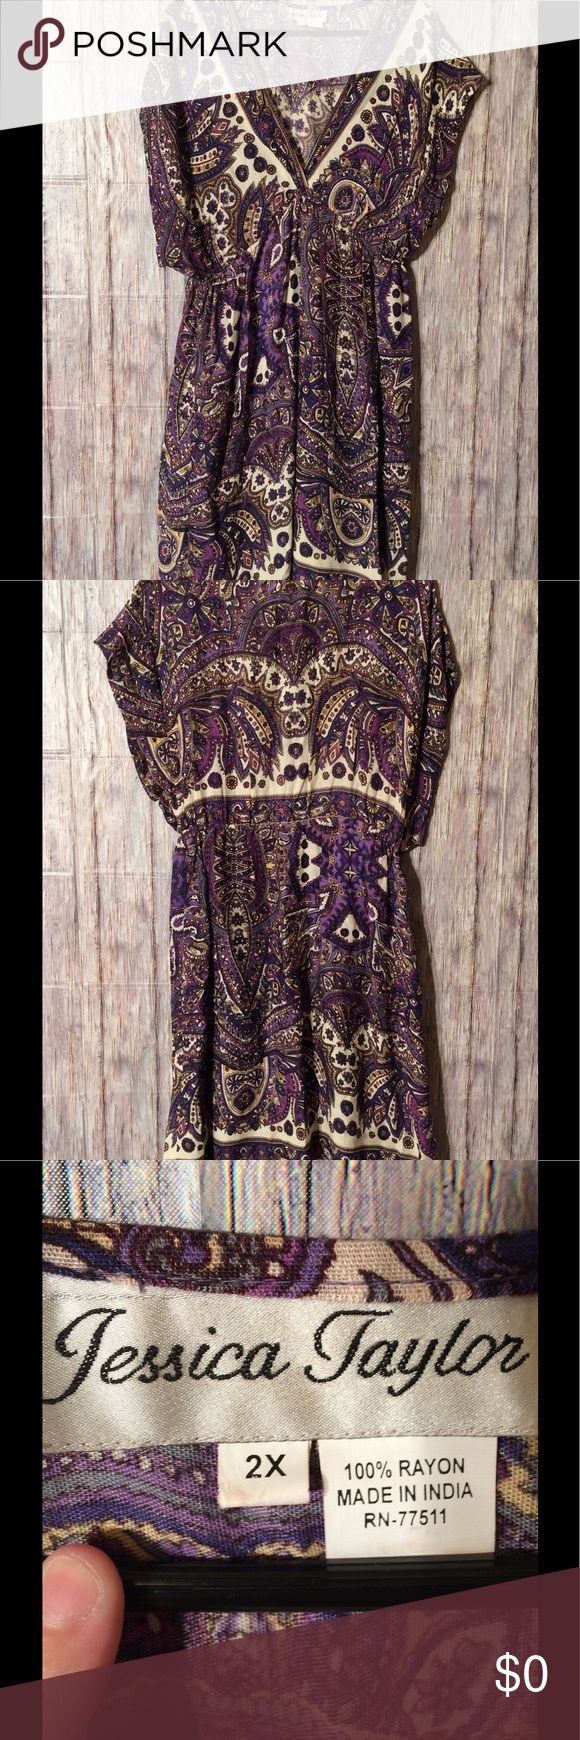 Jessica Taylor elegant yet casual summer dress Size 2x, excellent condition. May bundle with two or more additional items from this closet for 15% off! No holds or trades pls! Jessica Taylor Dresses Midi